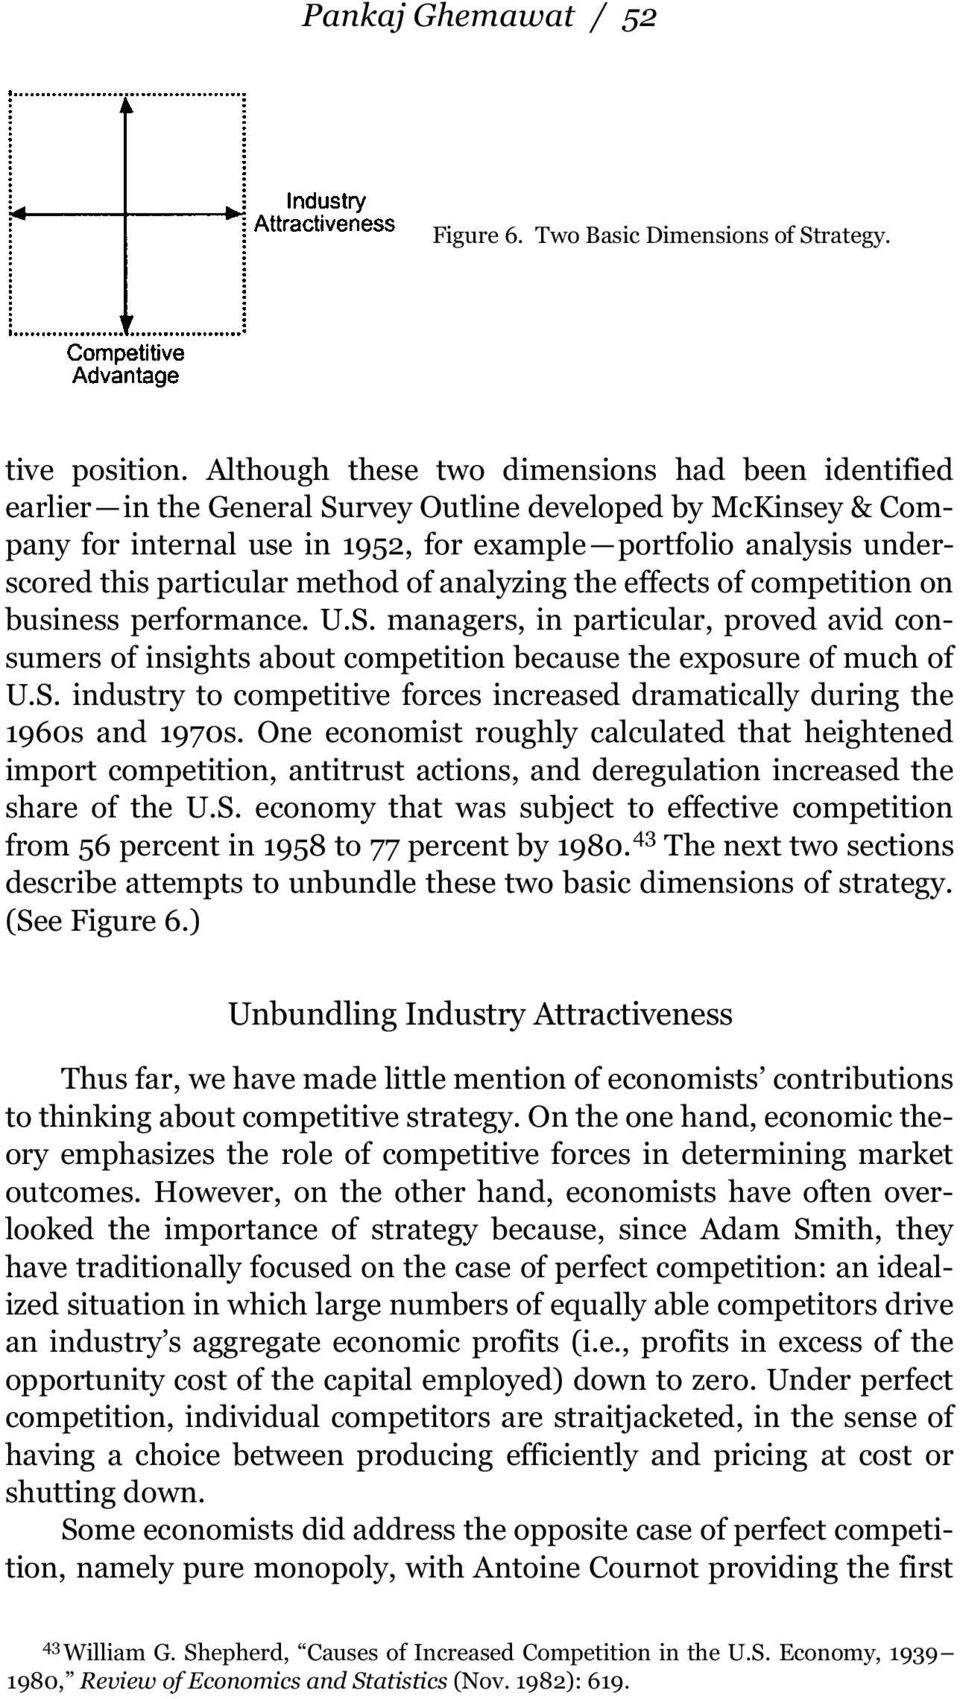 particular method of analyzing the effects of competition on business performance. U.S. managers, in particular, proved avid consumers of insights about competition because the exposure of much of U.